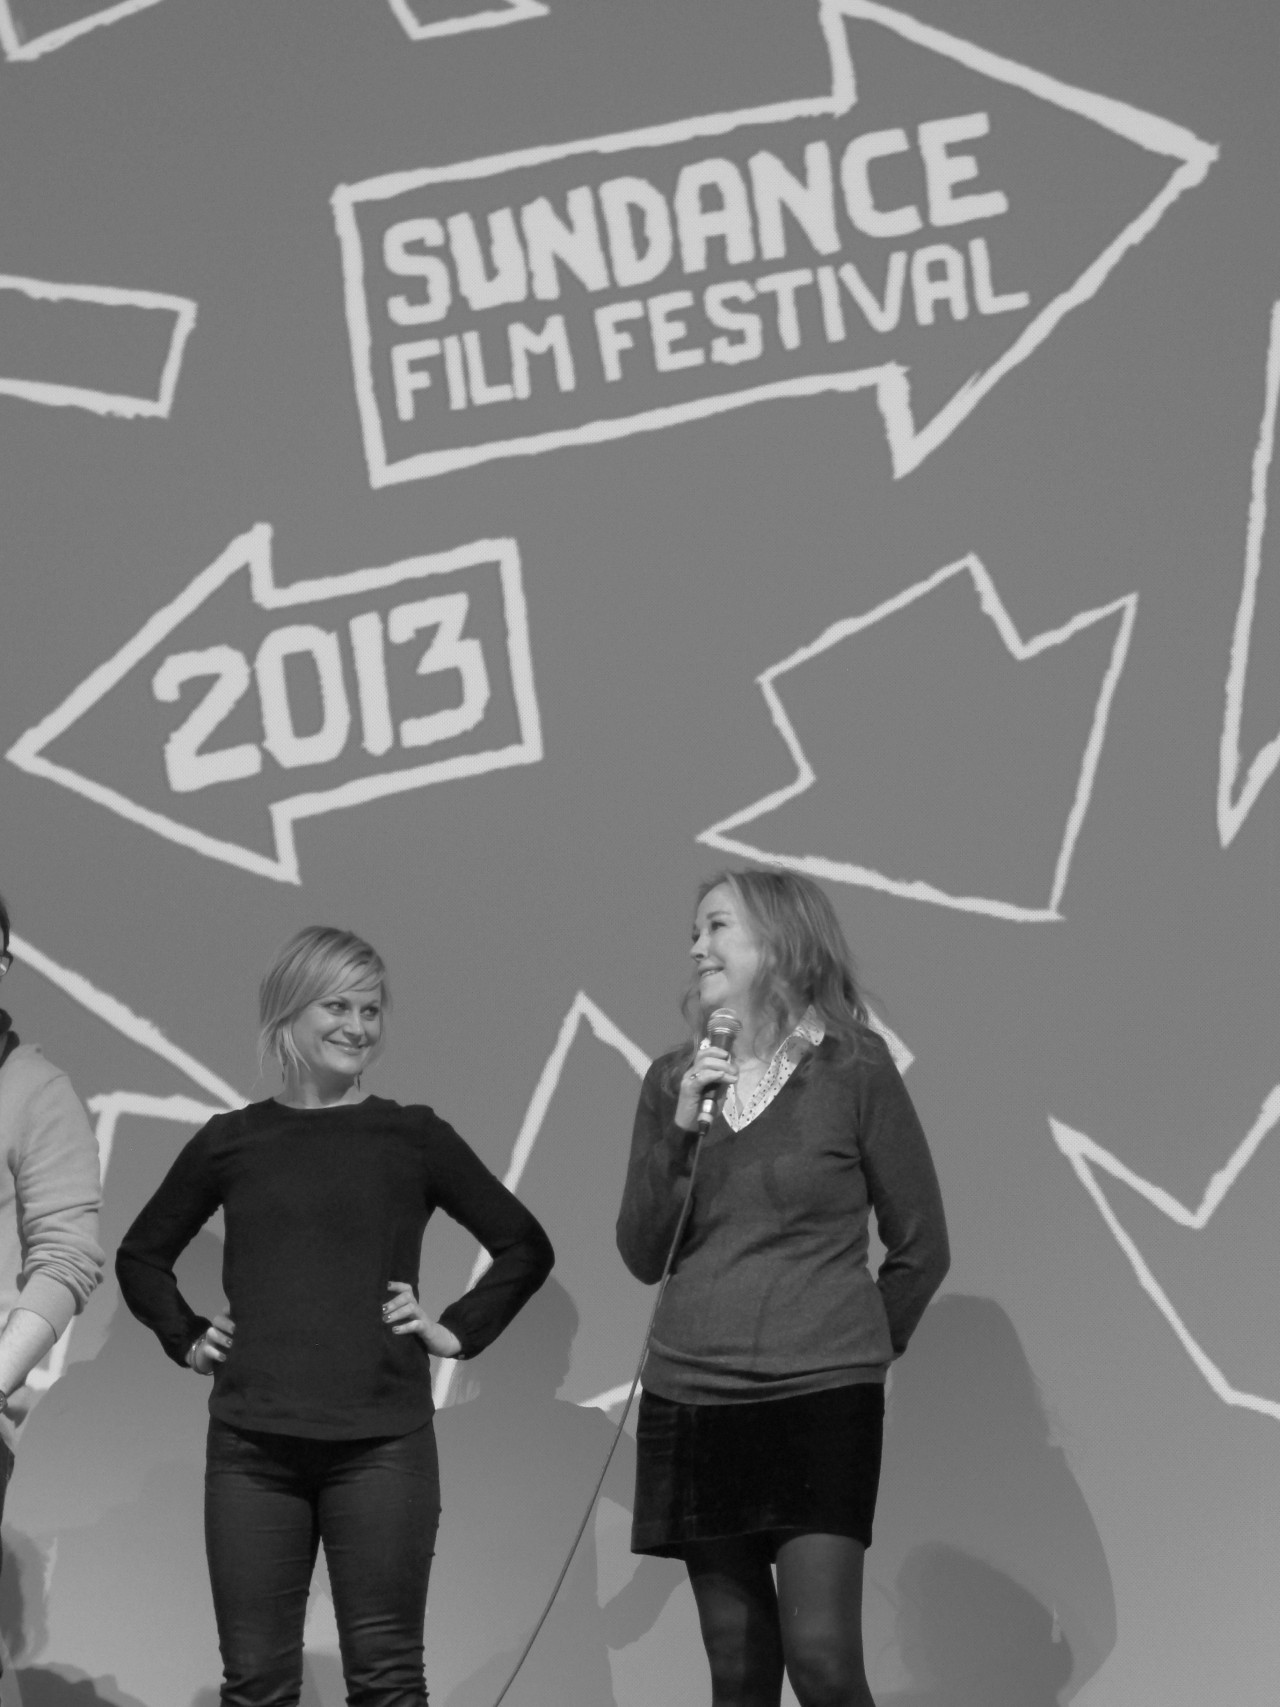 "Sundance Premiere: ACOD We all worship Amy Poehler, but who does she worship? At the premiere for A.C.O.D. which The Inside Source attended, Amy told us ""it was such a dream come true to get to play with Catherine [O' Hara]. We agree and have been obsessed with Catherine since her SCTV days. In the film, Amy plays the new bitchy trophy wife of Catherine's ex-husband. ""It was really fun to play such a bitch"" said Amy. The indie A.C.O.D. (which stands for ""Adult Children of Divorce"") plays in the spirit of Flirting with Disaster with jabs on the neurosis of divorce. The stellar cast also included Adam Scott, Richard Jenkins, Mary Elizabeth Winstead, Clark Duke, Ken Howard, Jessica Alba, and Jane Lynch.  (Talent: Amy Poehler and Catherine O' Hara. Photo and Text by Jauretsi)"